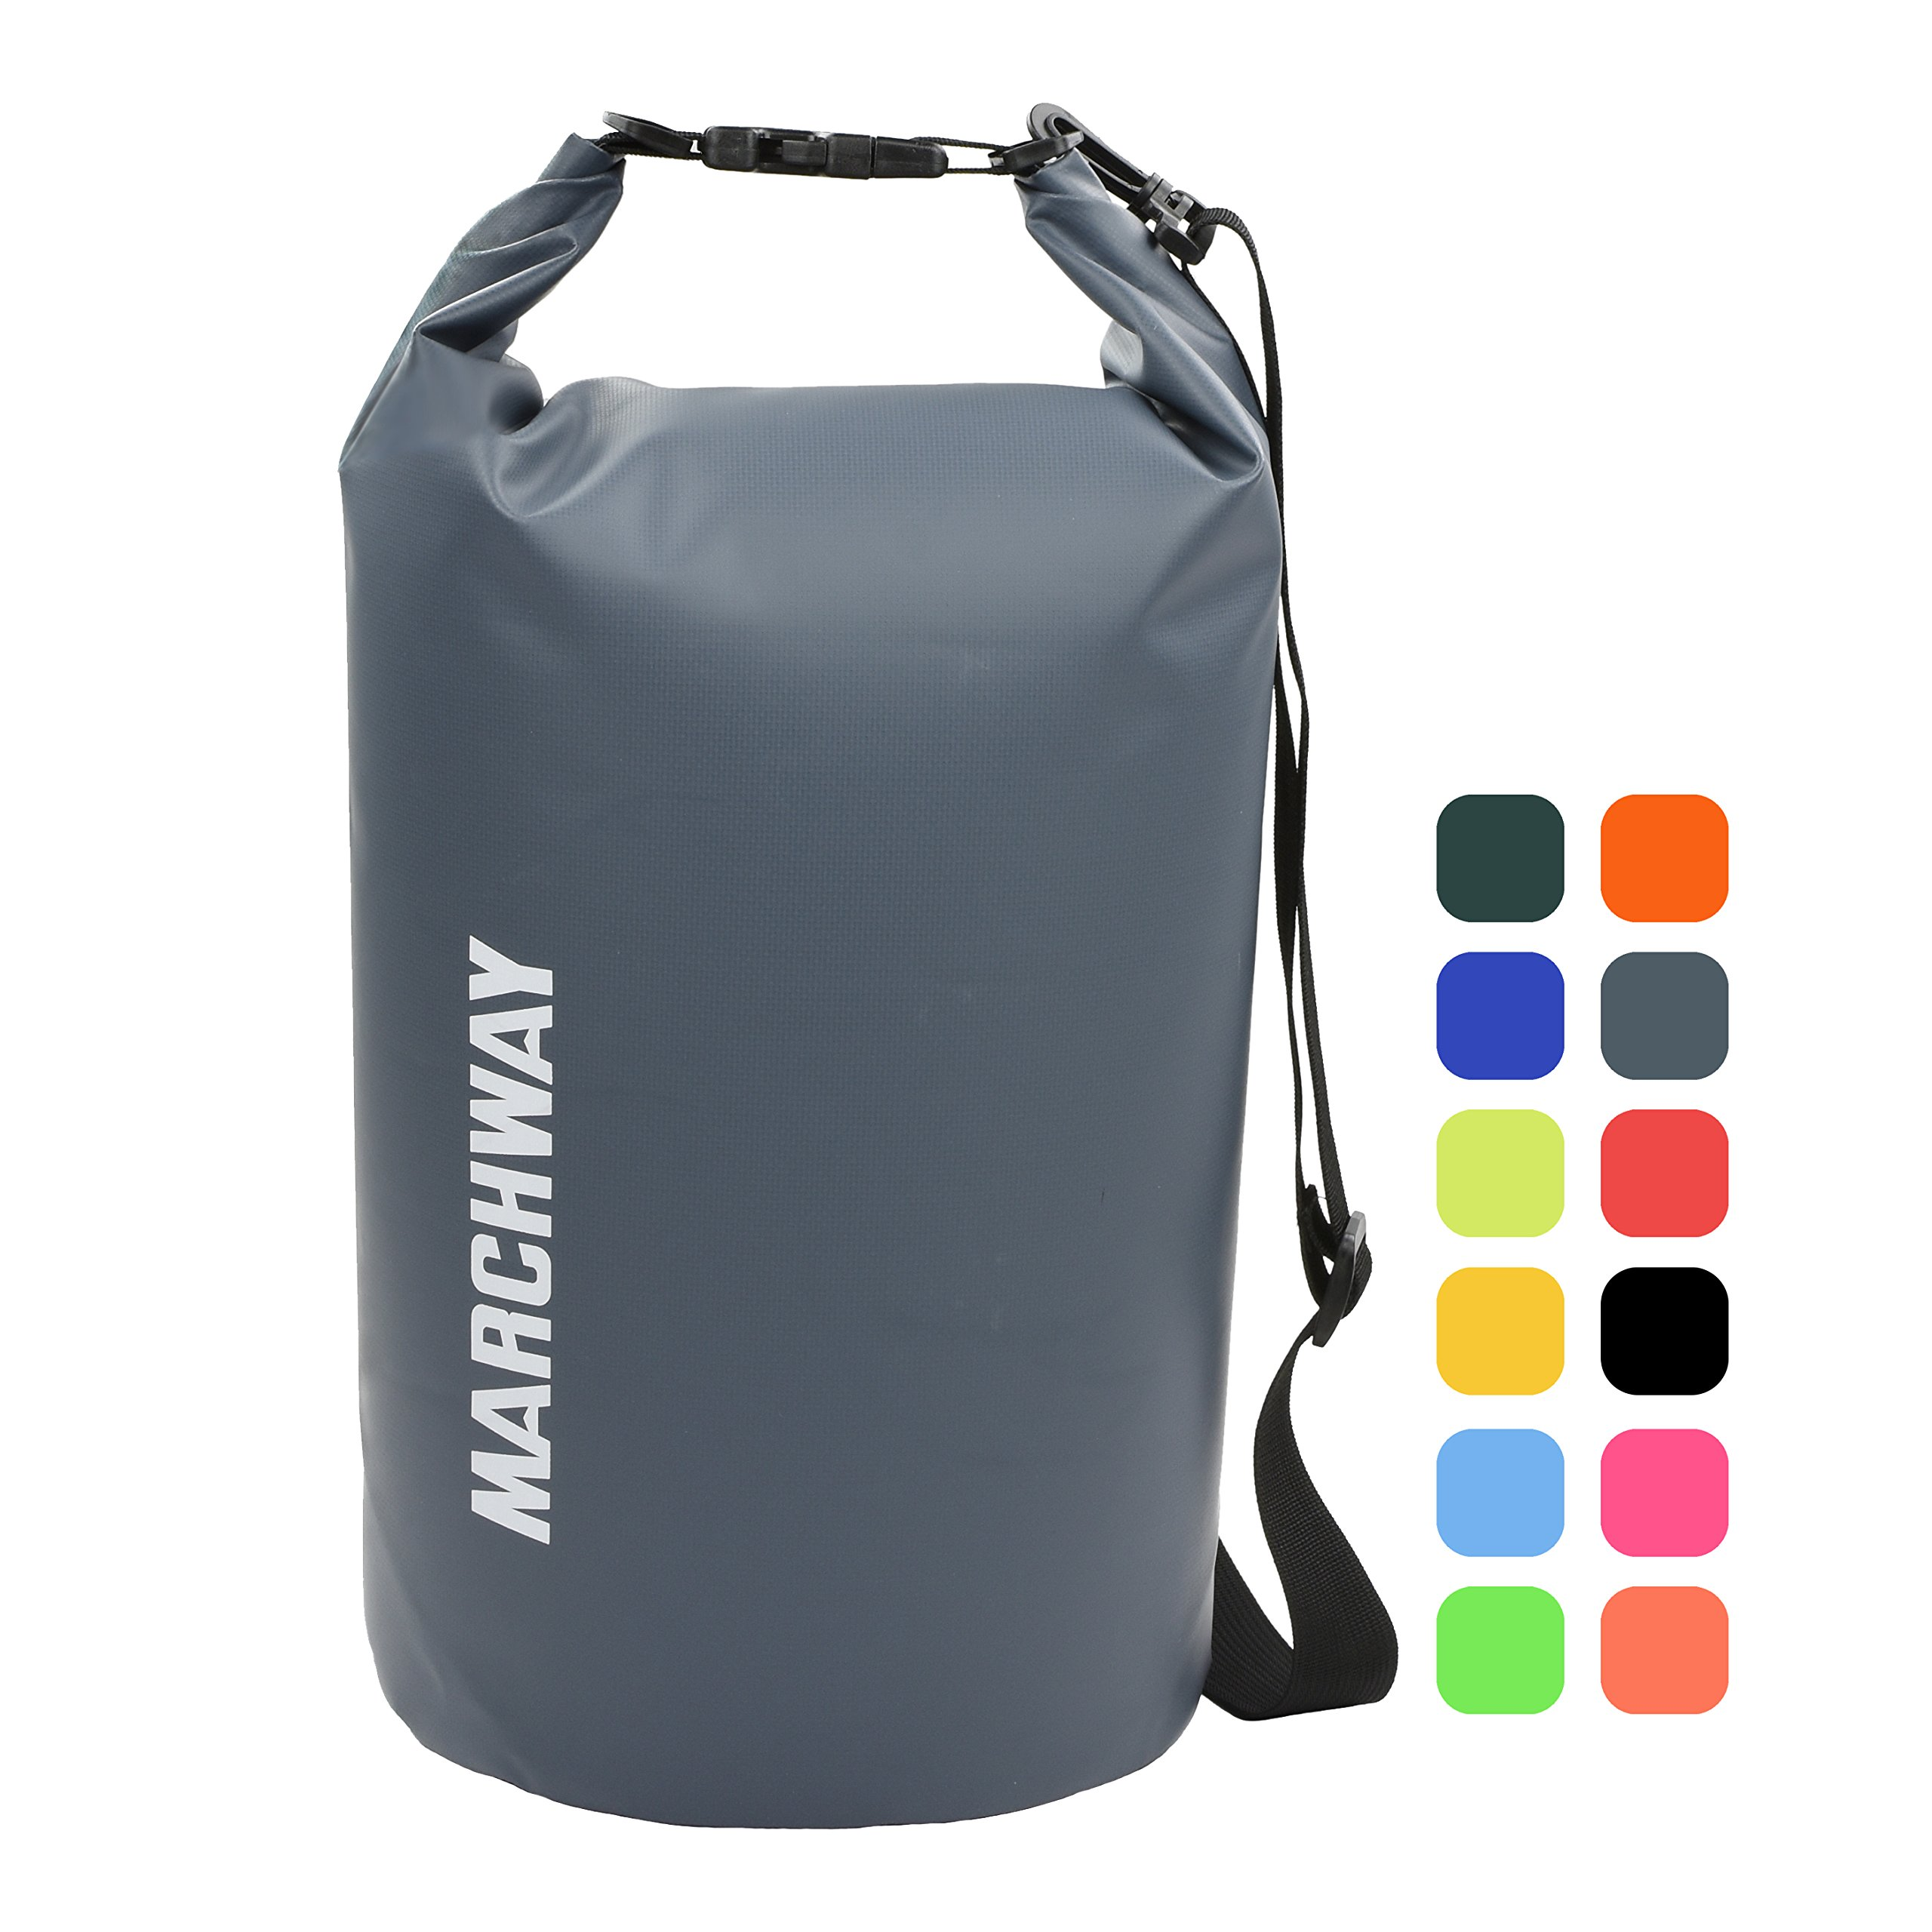 MARCHWAY Floating Waterproof Dry Bag Backpack 5L/10L/20L/30L/40L, Roll Top Pack Sack Keeps Gear Dry for Kayaking, Rafting, Boating, Swimming, Camping, Hiking, Beach, Fishing (Grey, 20L) by MARCHWAY